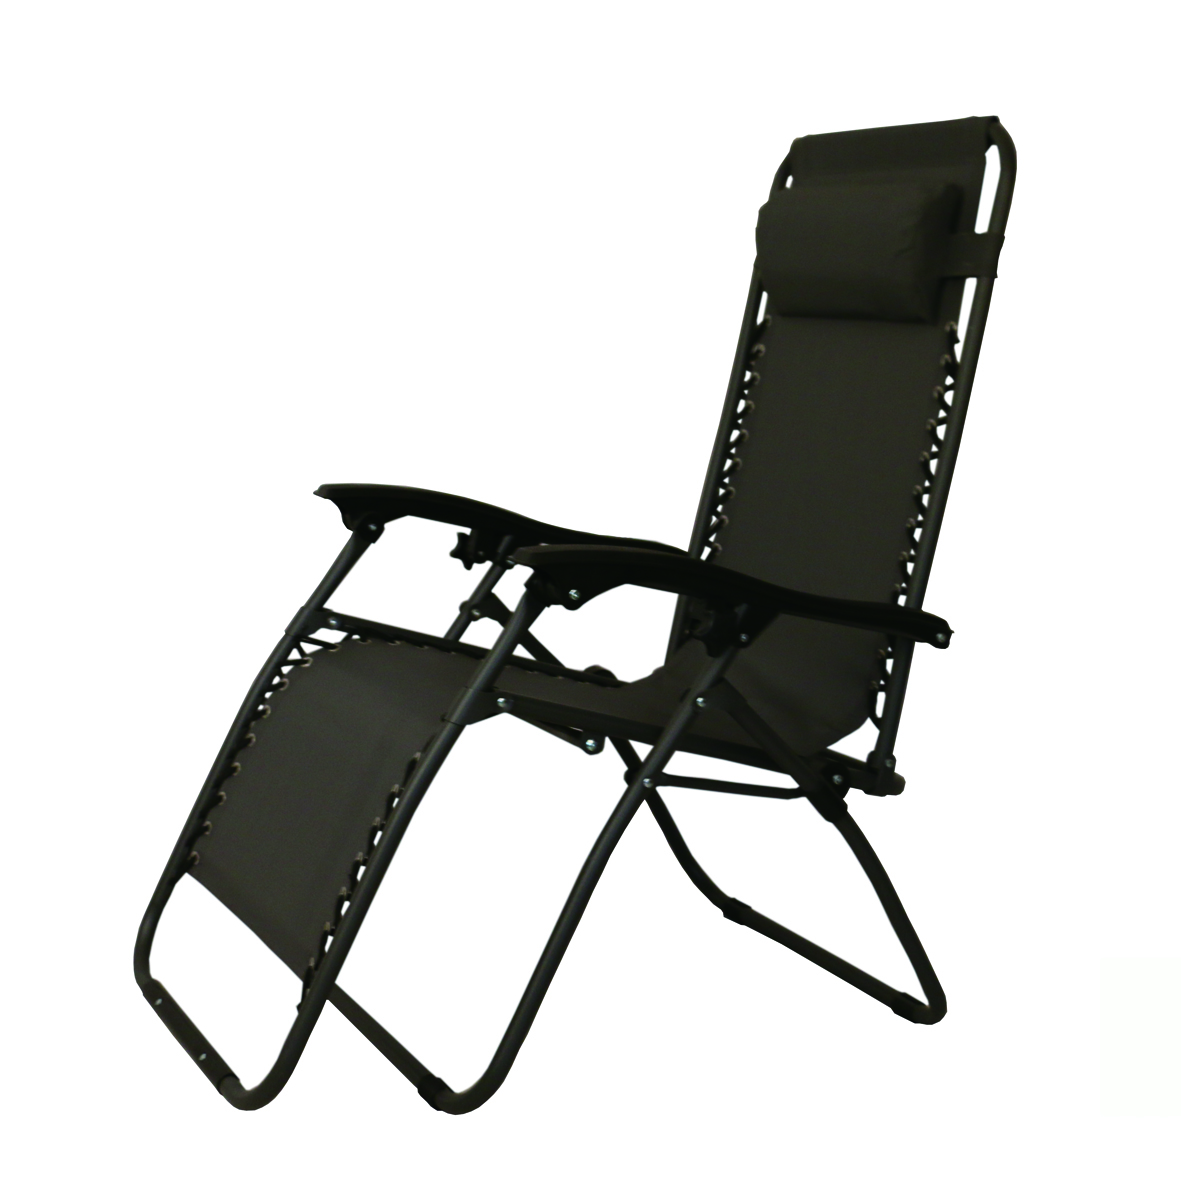 Outdoor Chaise Beach Sun Chaise Lounge Zero Gravity Chair Recliner Sling Chair with Cup Holder